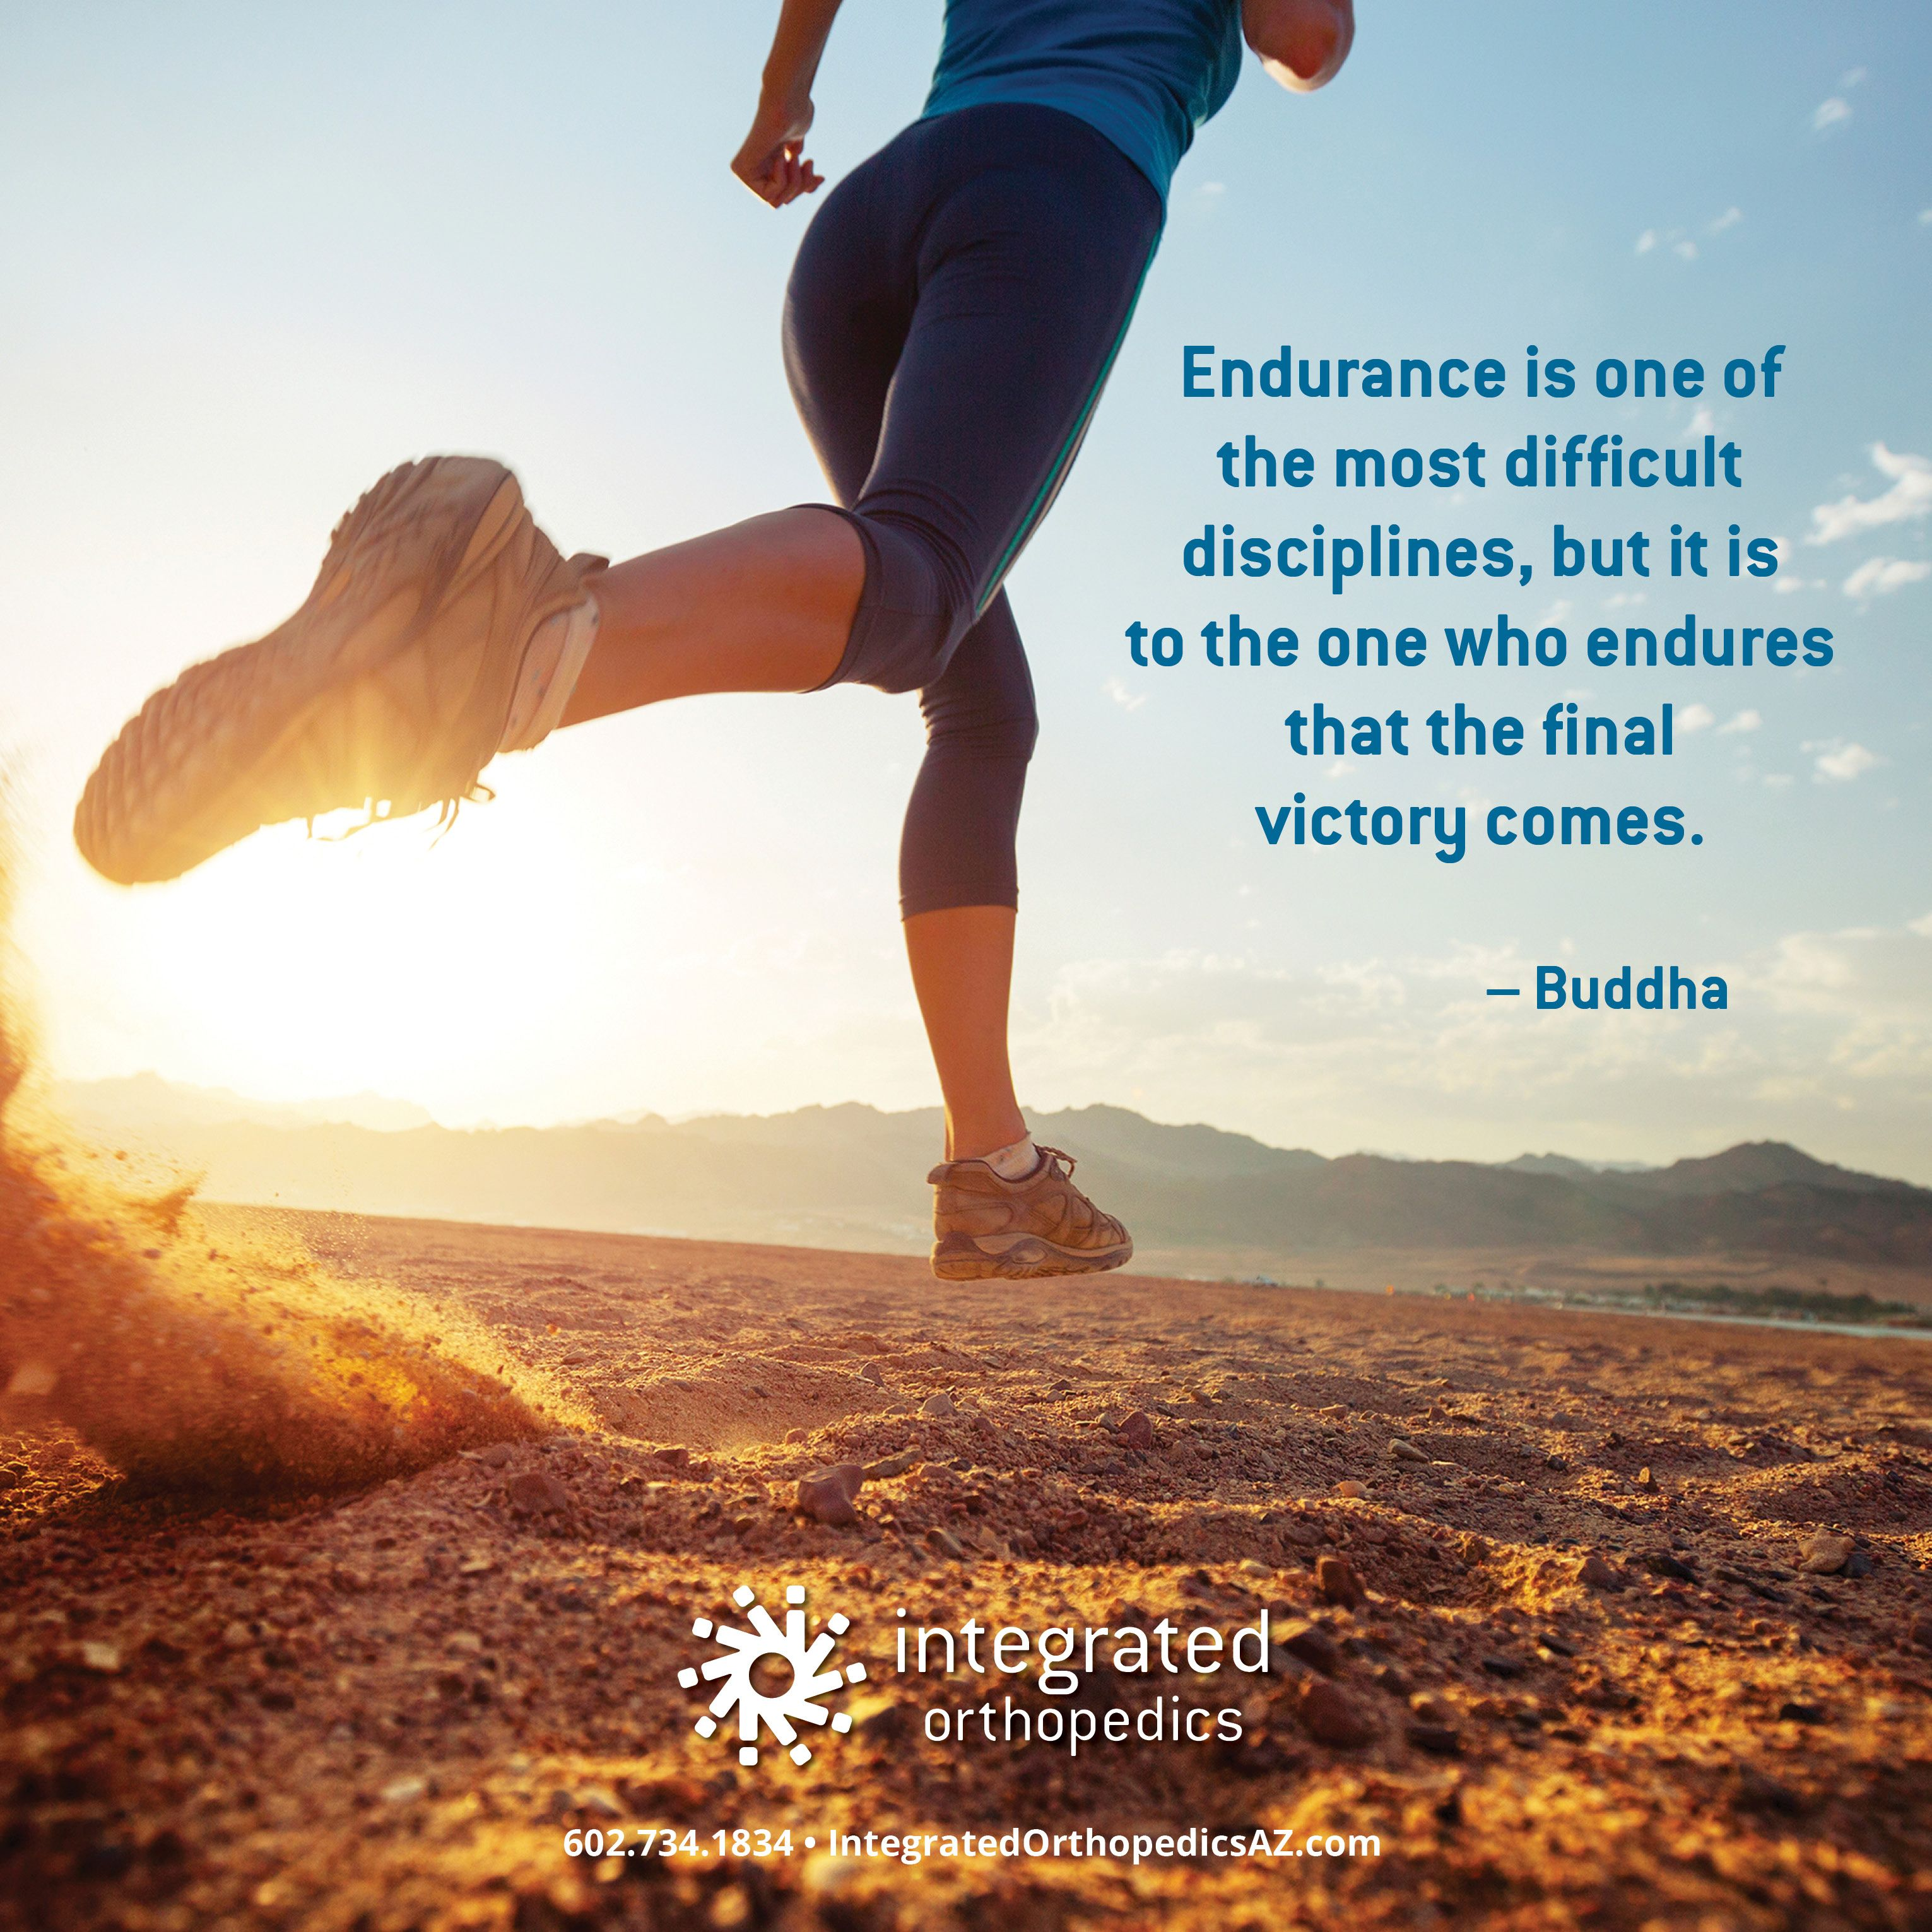 Exercise inspiration for endurance athletes and weekend